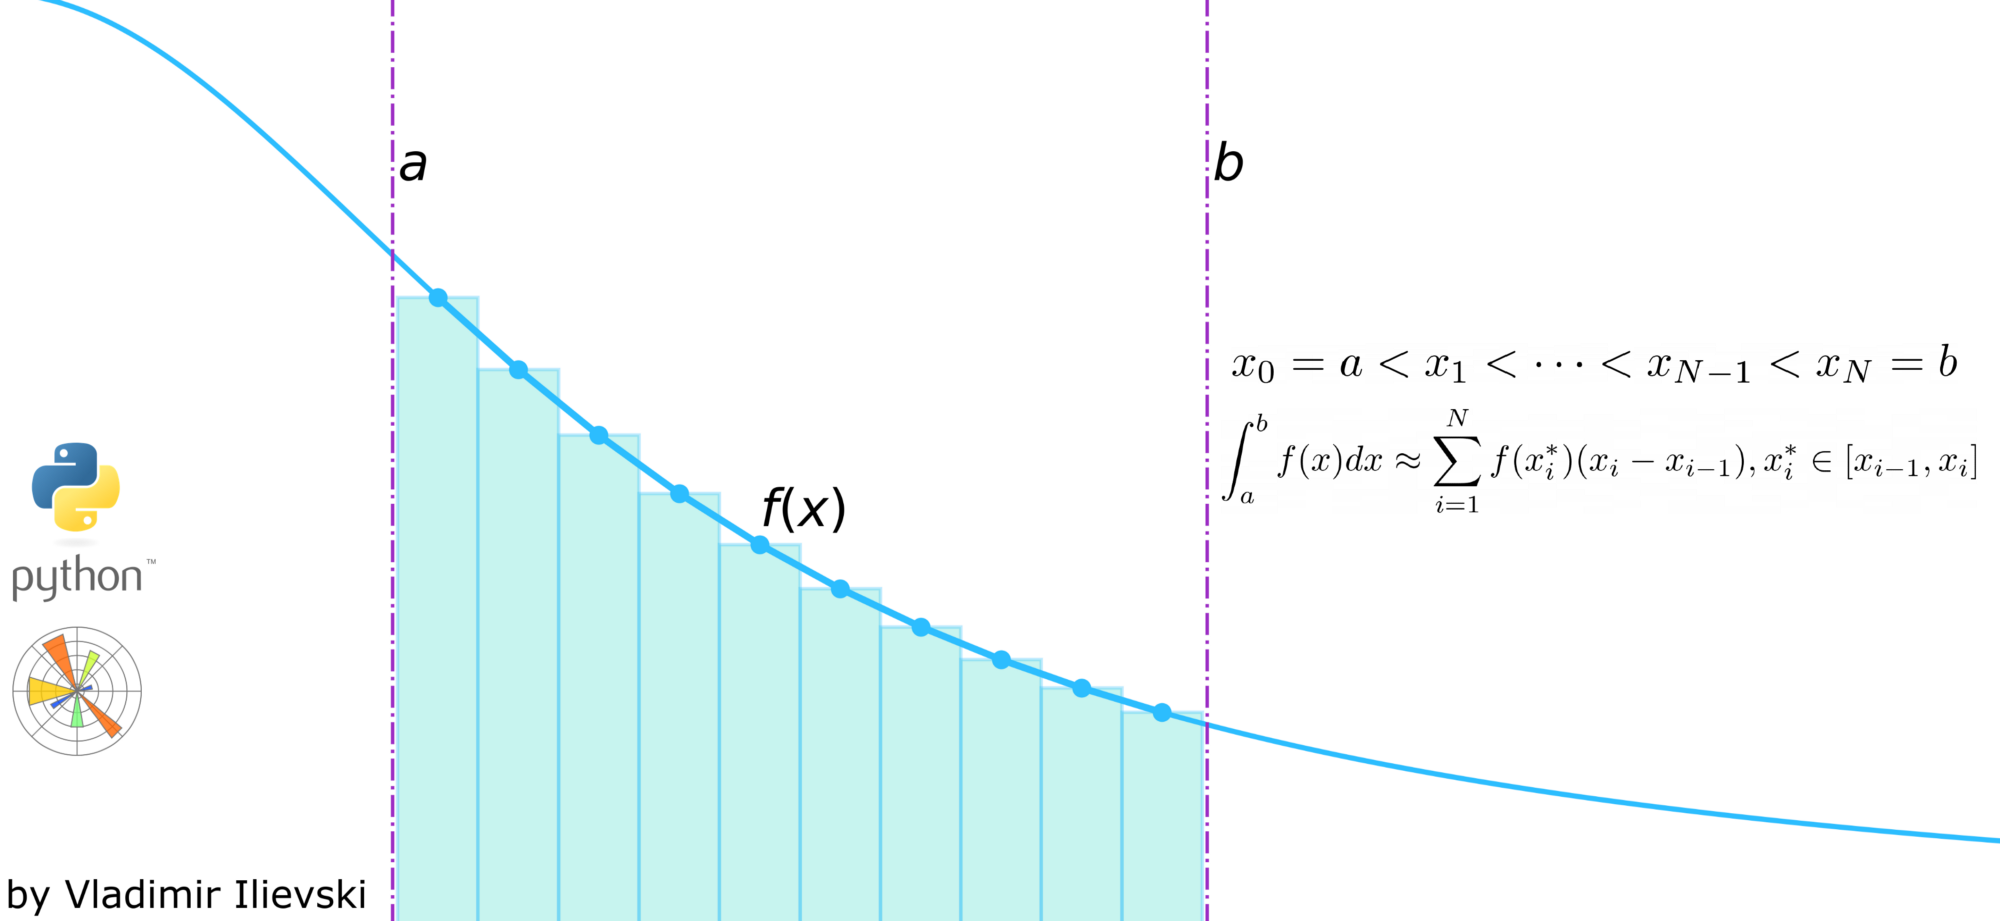 Teaser image showing numerical integration using Riemann Sums in Python visualized with Matplotlib